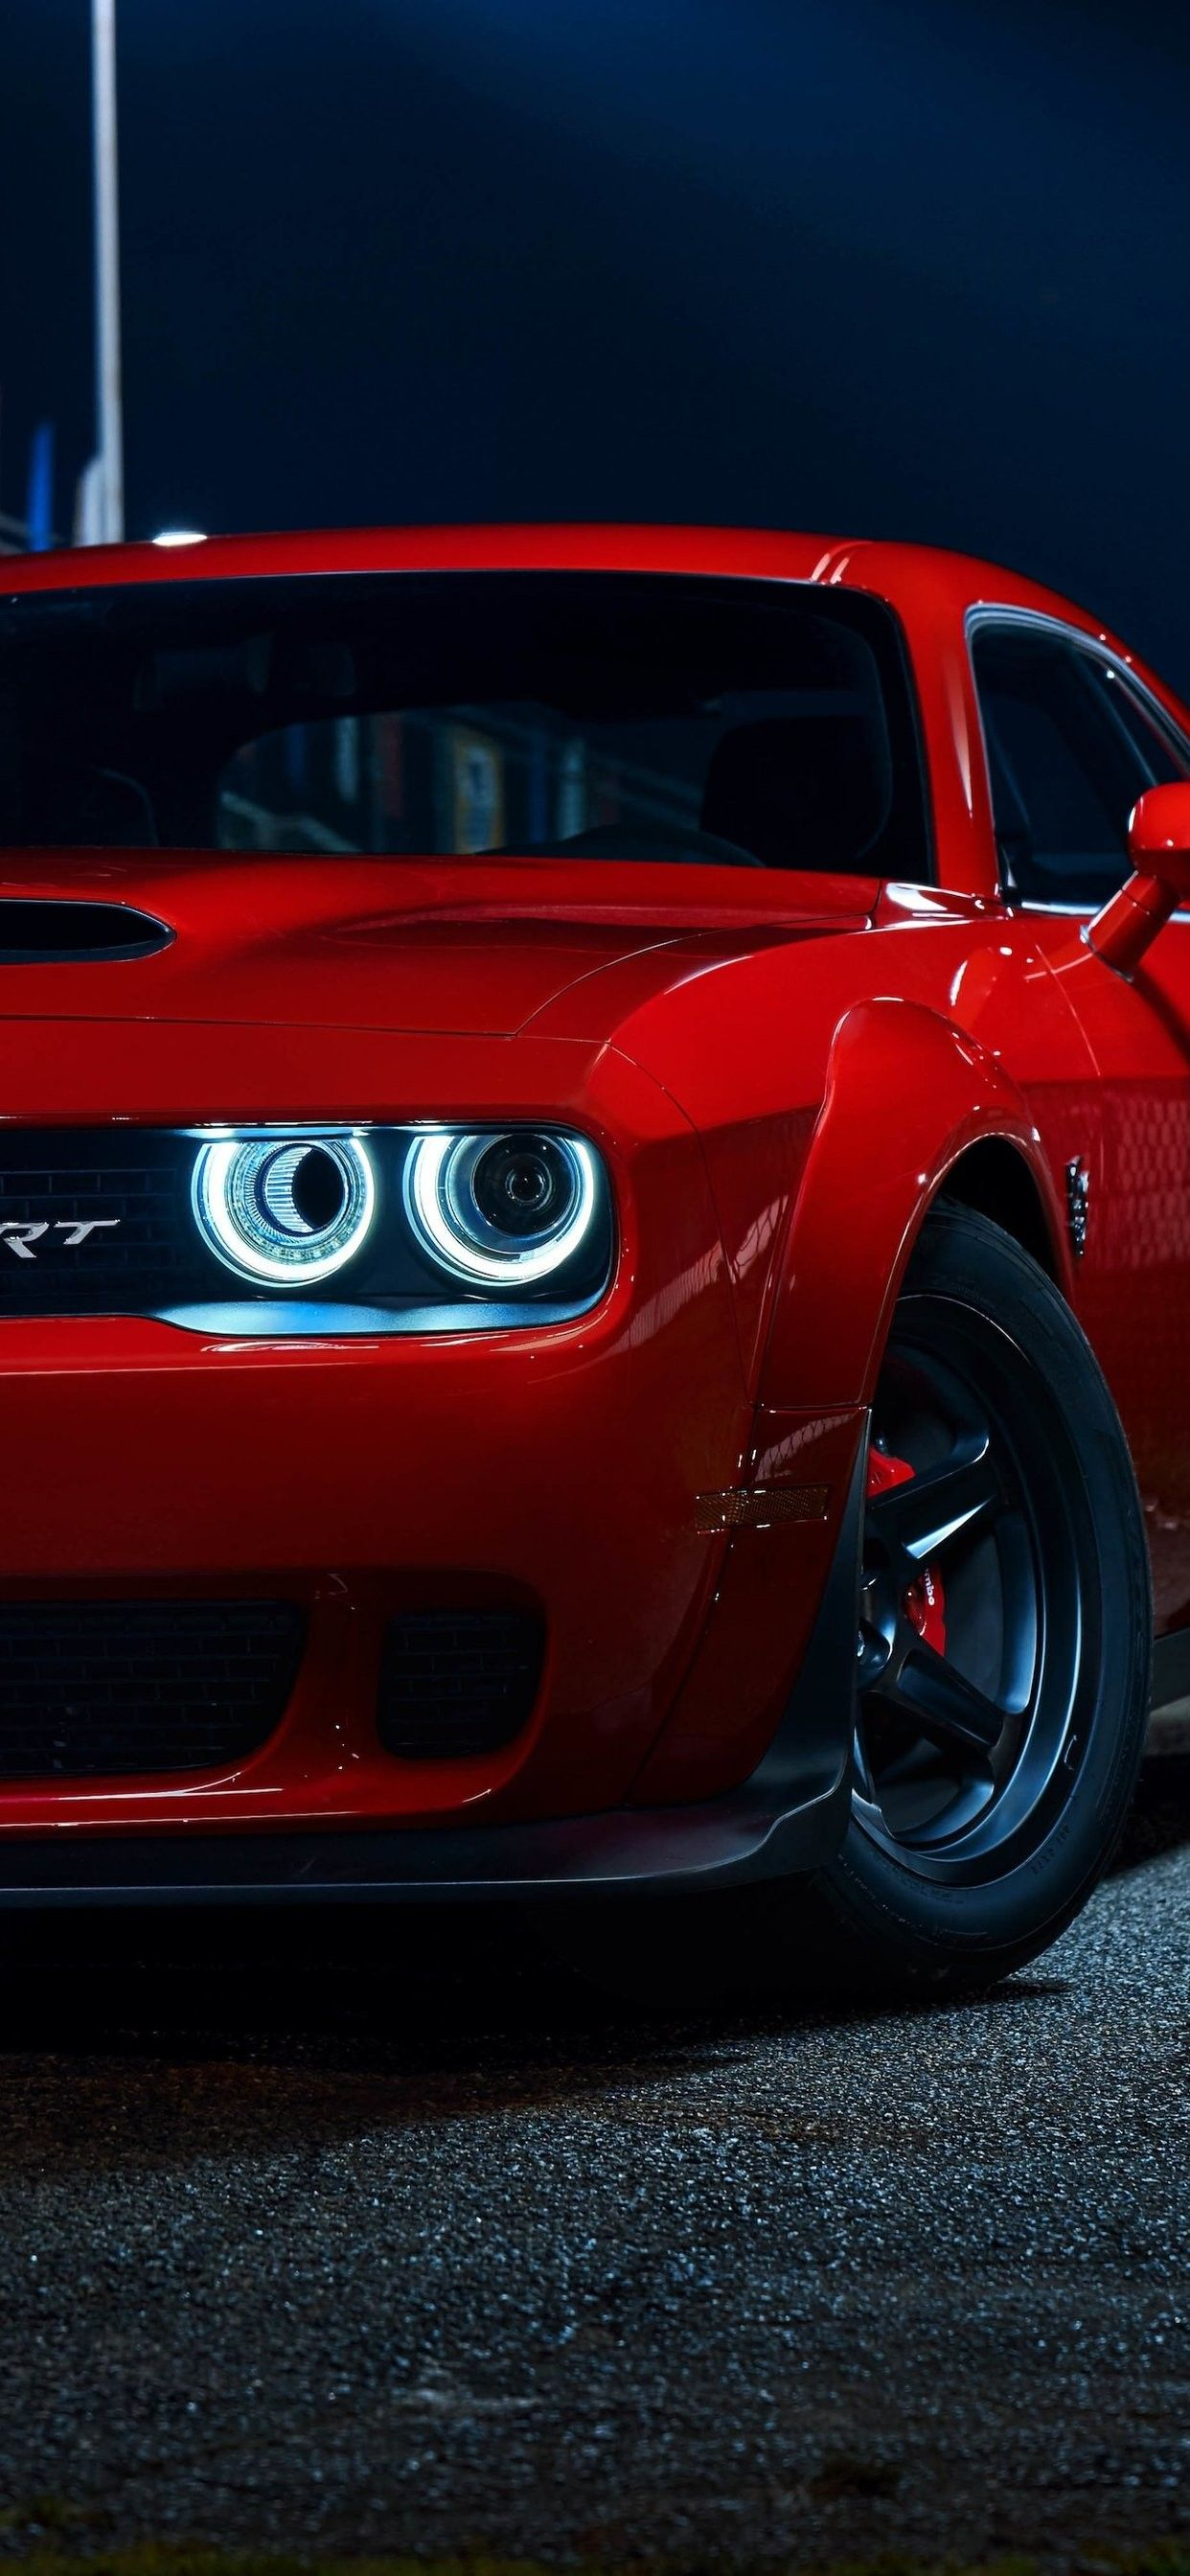 Dodge Demon Wallpapers On Wallpaperdog